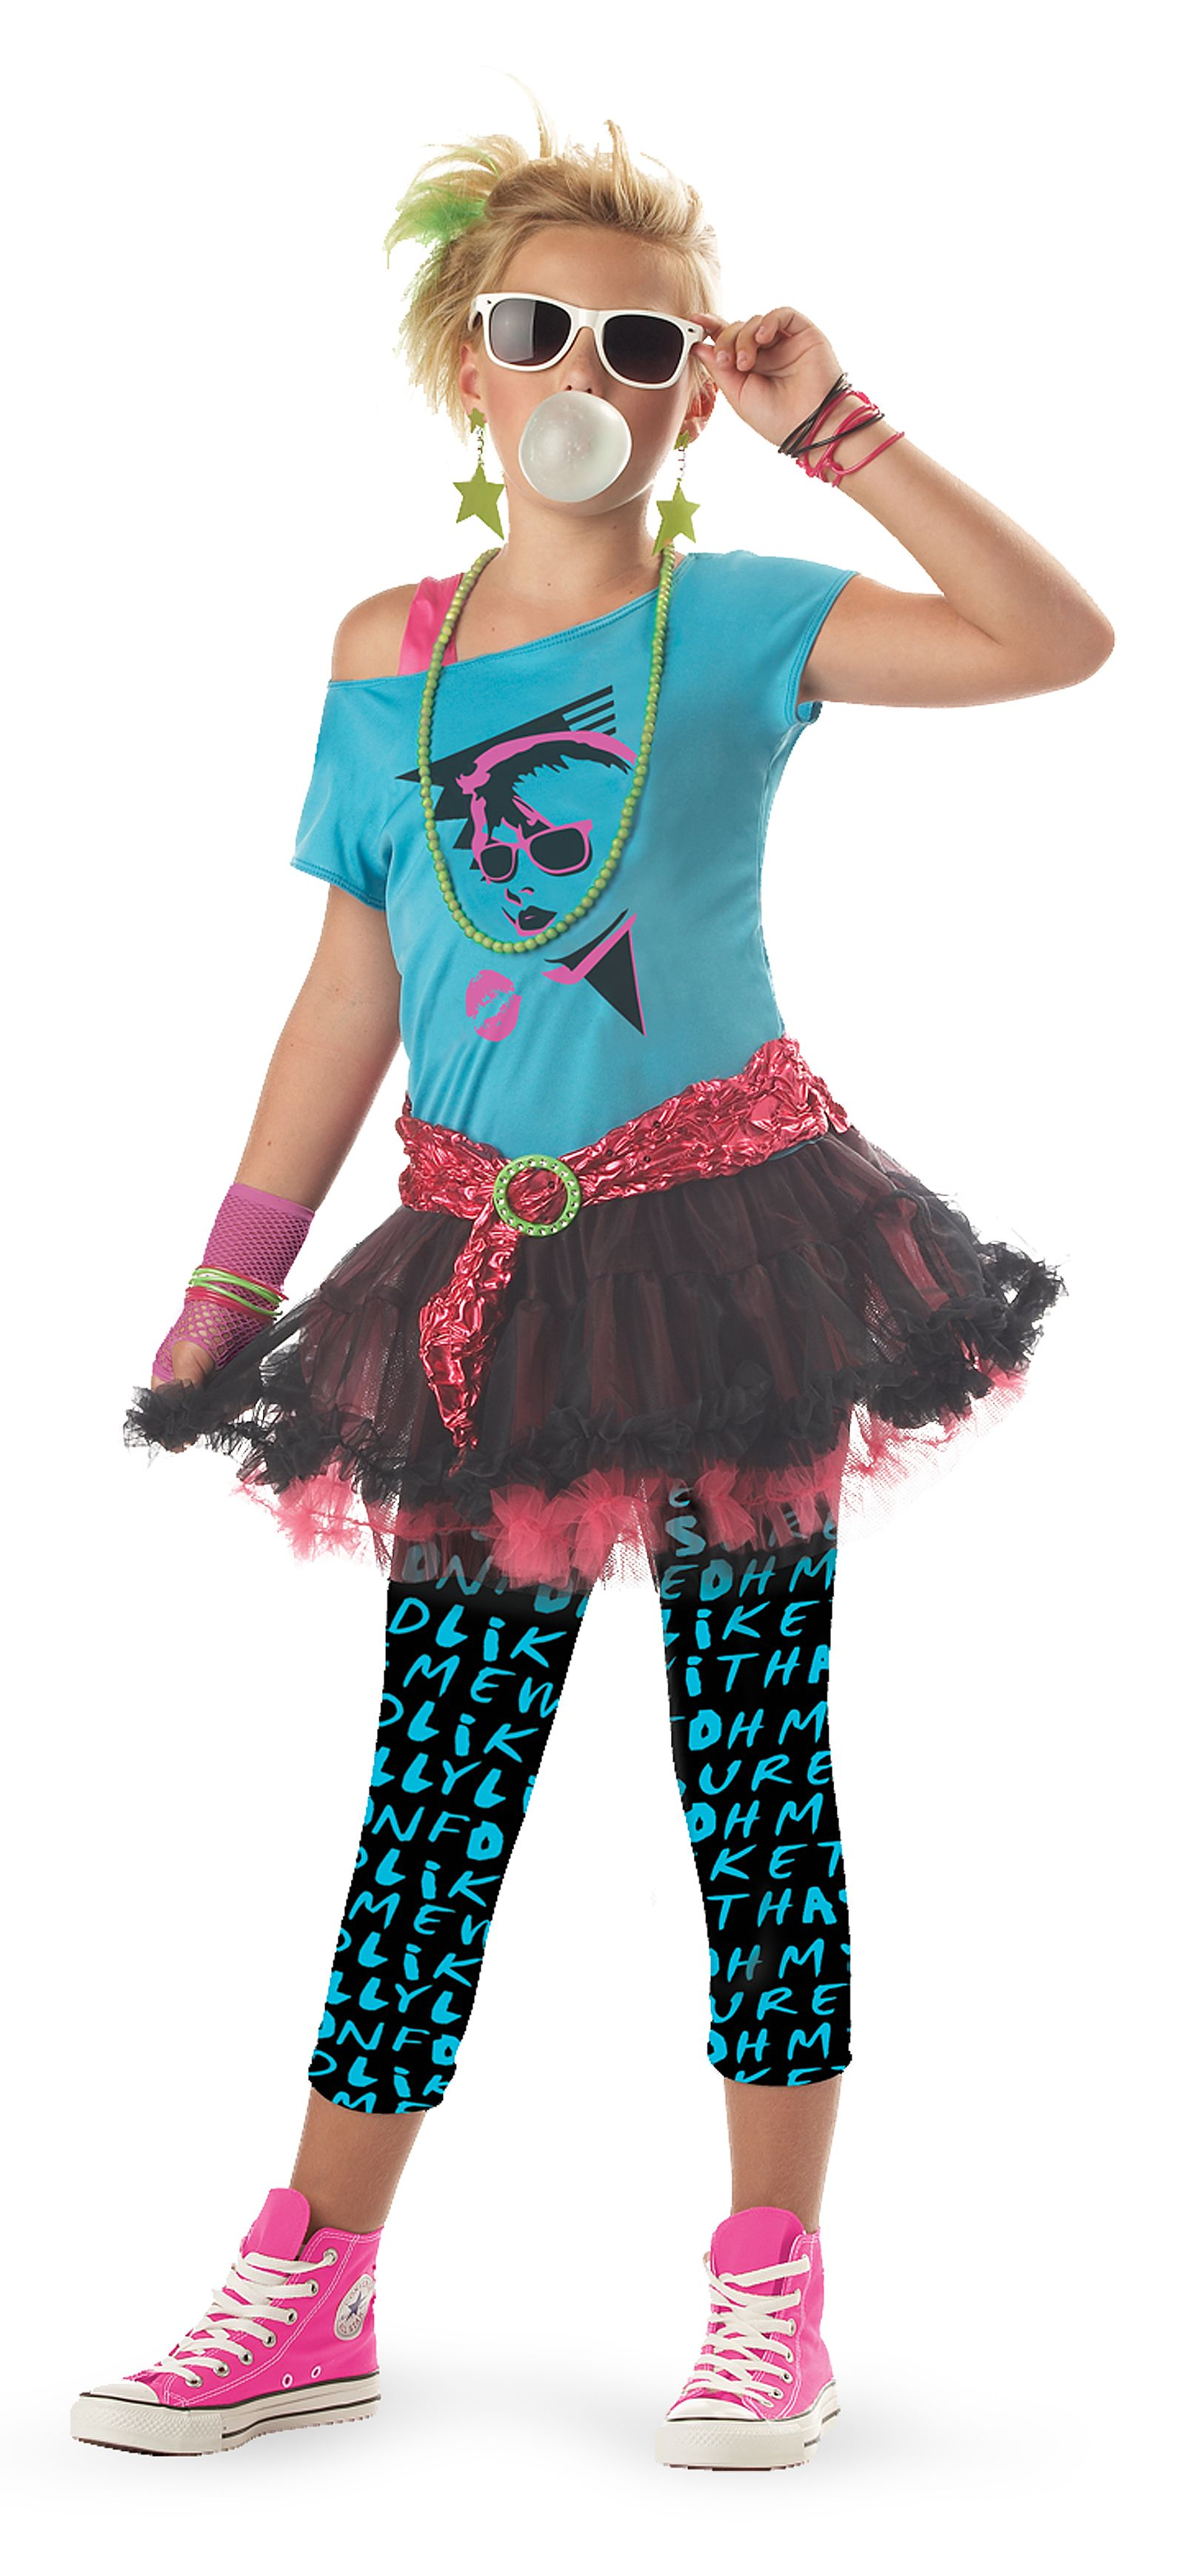 Dress code eighties - This Totally Awesome Valley Girl Costume Features A Blue Off The Shoulder Top With An Face Screen Print On The Chest One Hot Pink Strap And An Attached